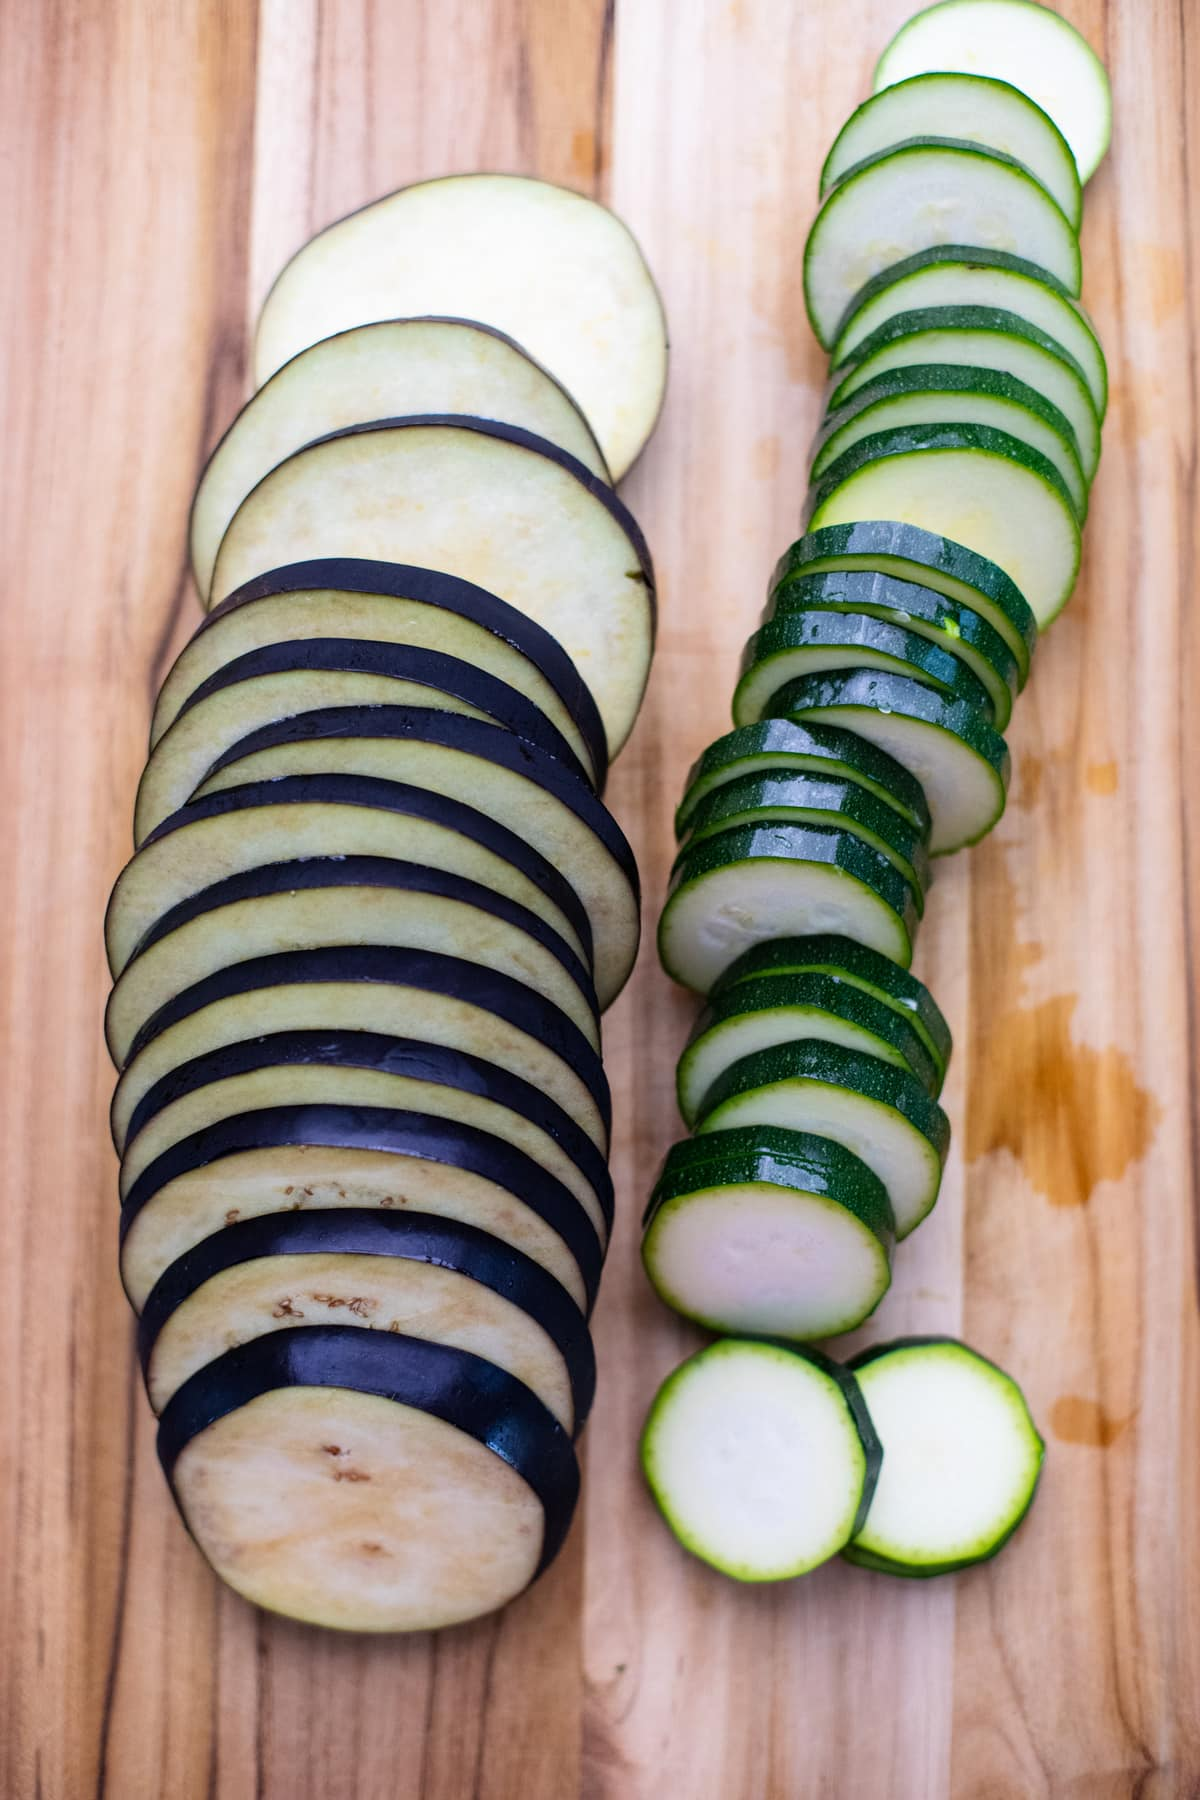 eggplant and zucchini cut into slices on wooden cutting board.